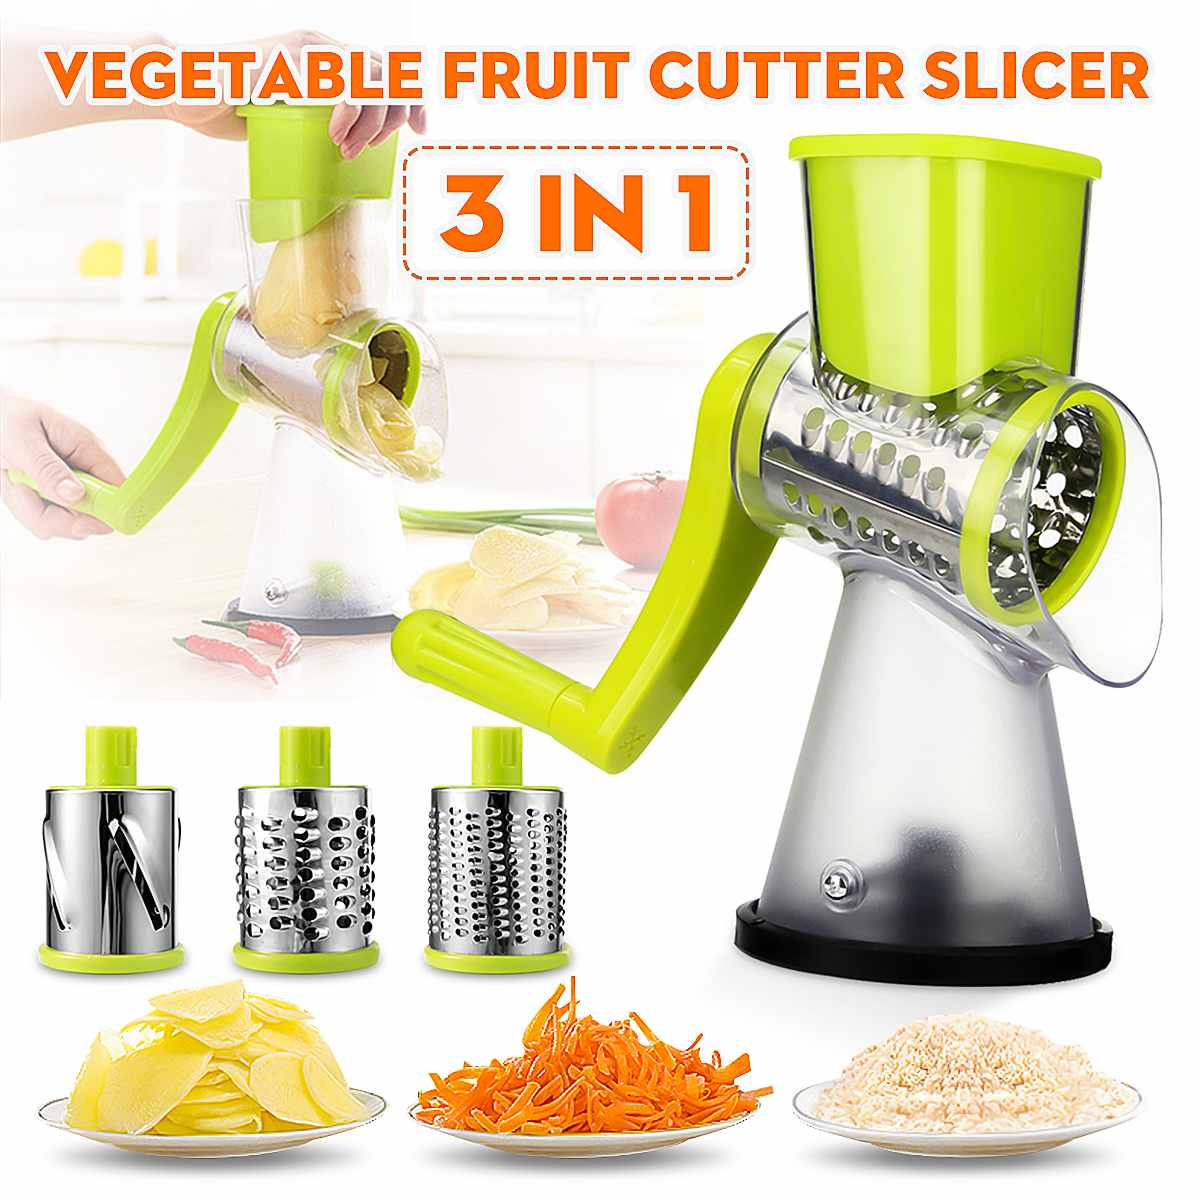 Roller Vegetable Slicer Cutter Potato Chopper Carrot Grater Detachable 3 Stainless Steel Blade Non-Slip Base Meat Grinder